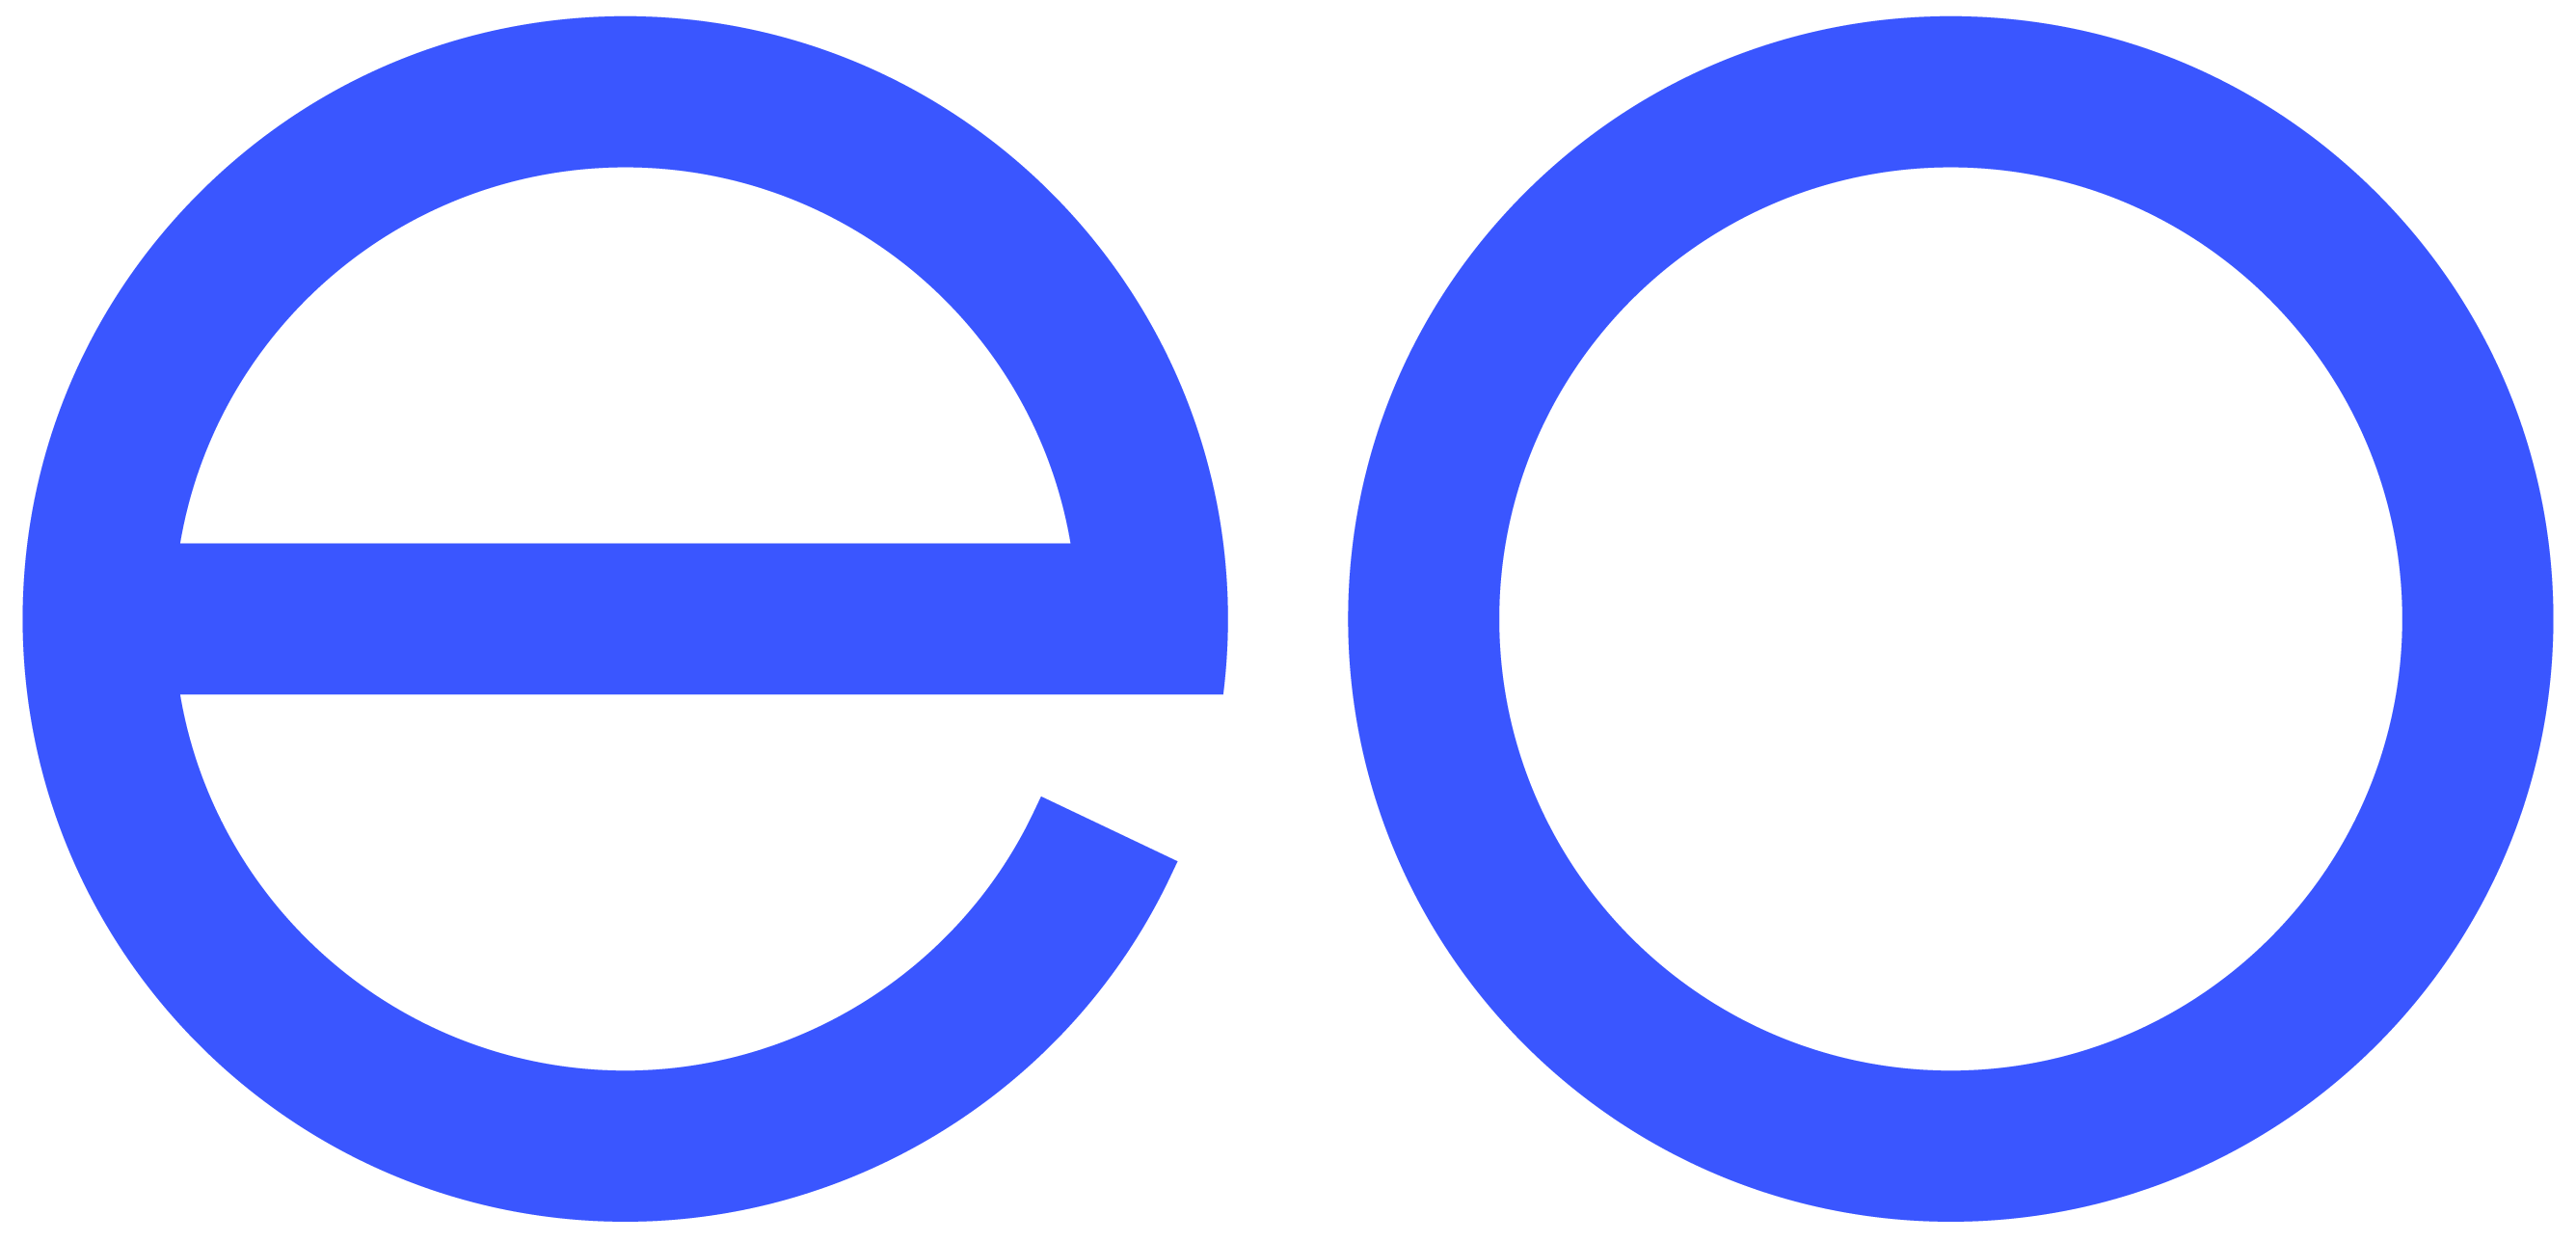 Eo charging logo in blue